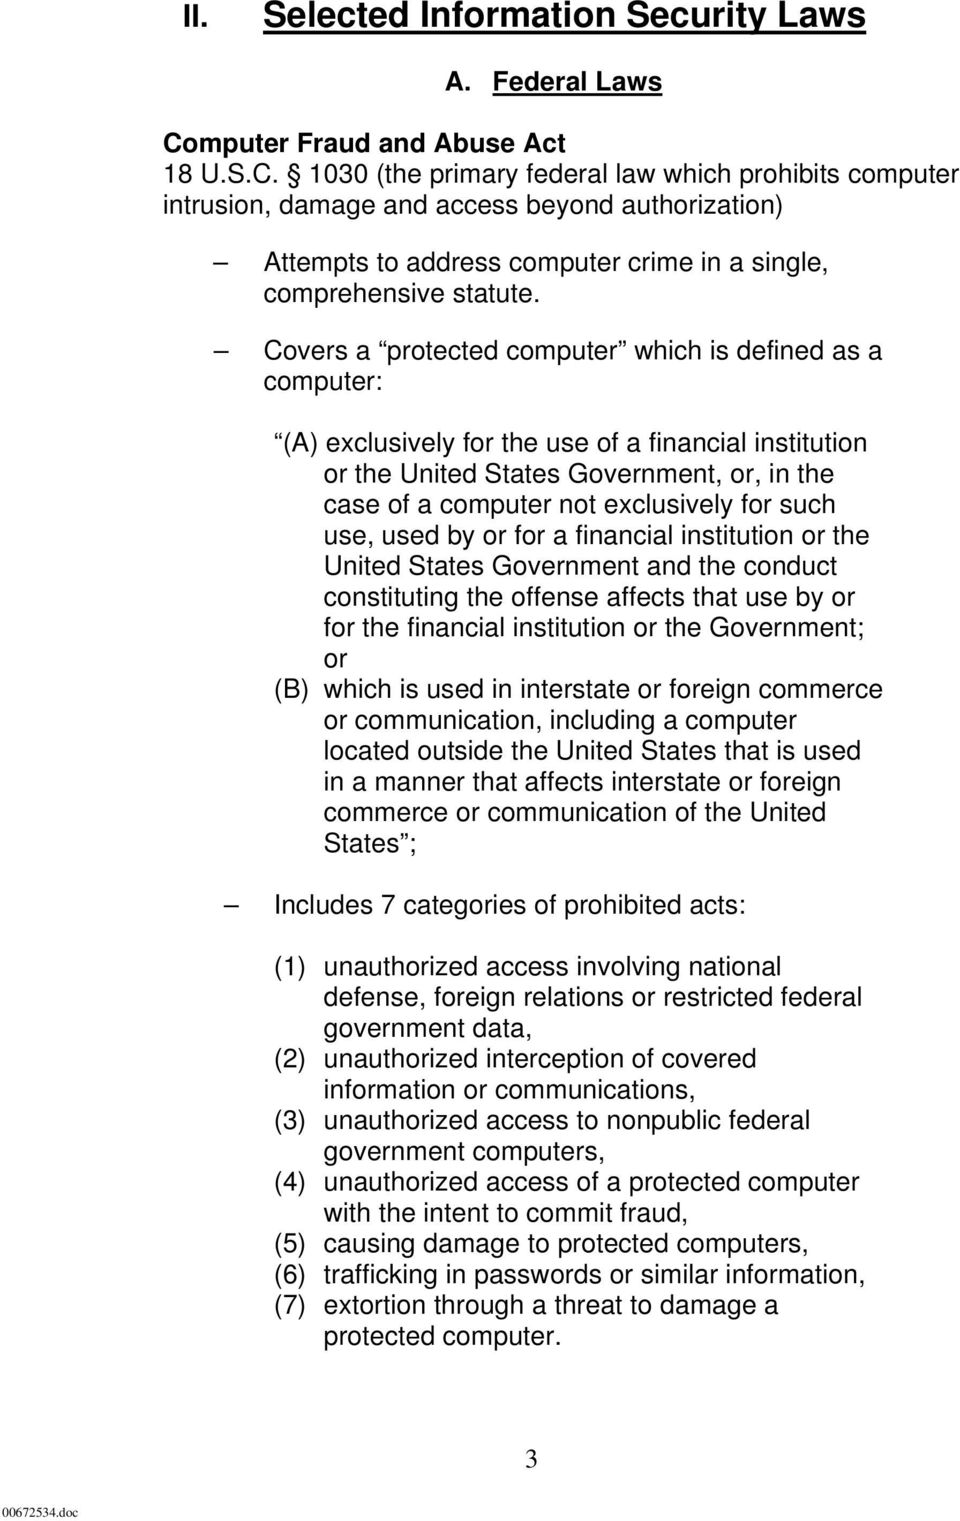 1030 (the primary federal law which prohibits computer intrusion, damage and access beyond authorization) Attempts to address computer crime in a single, comprehensive statute.